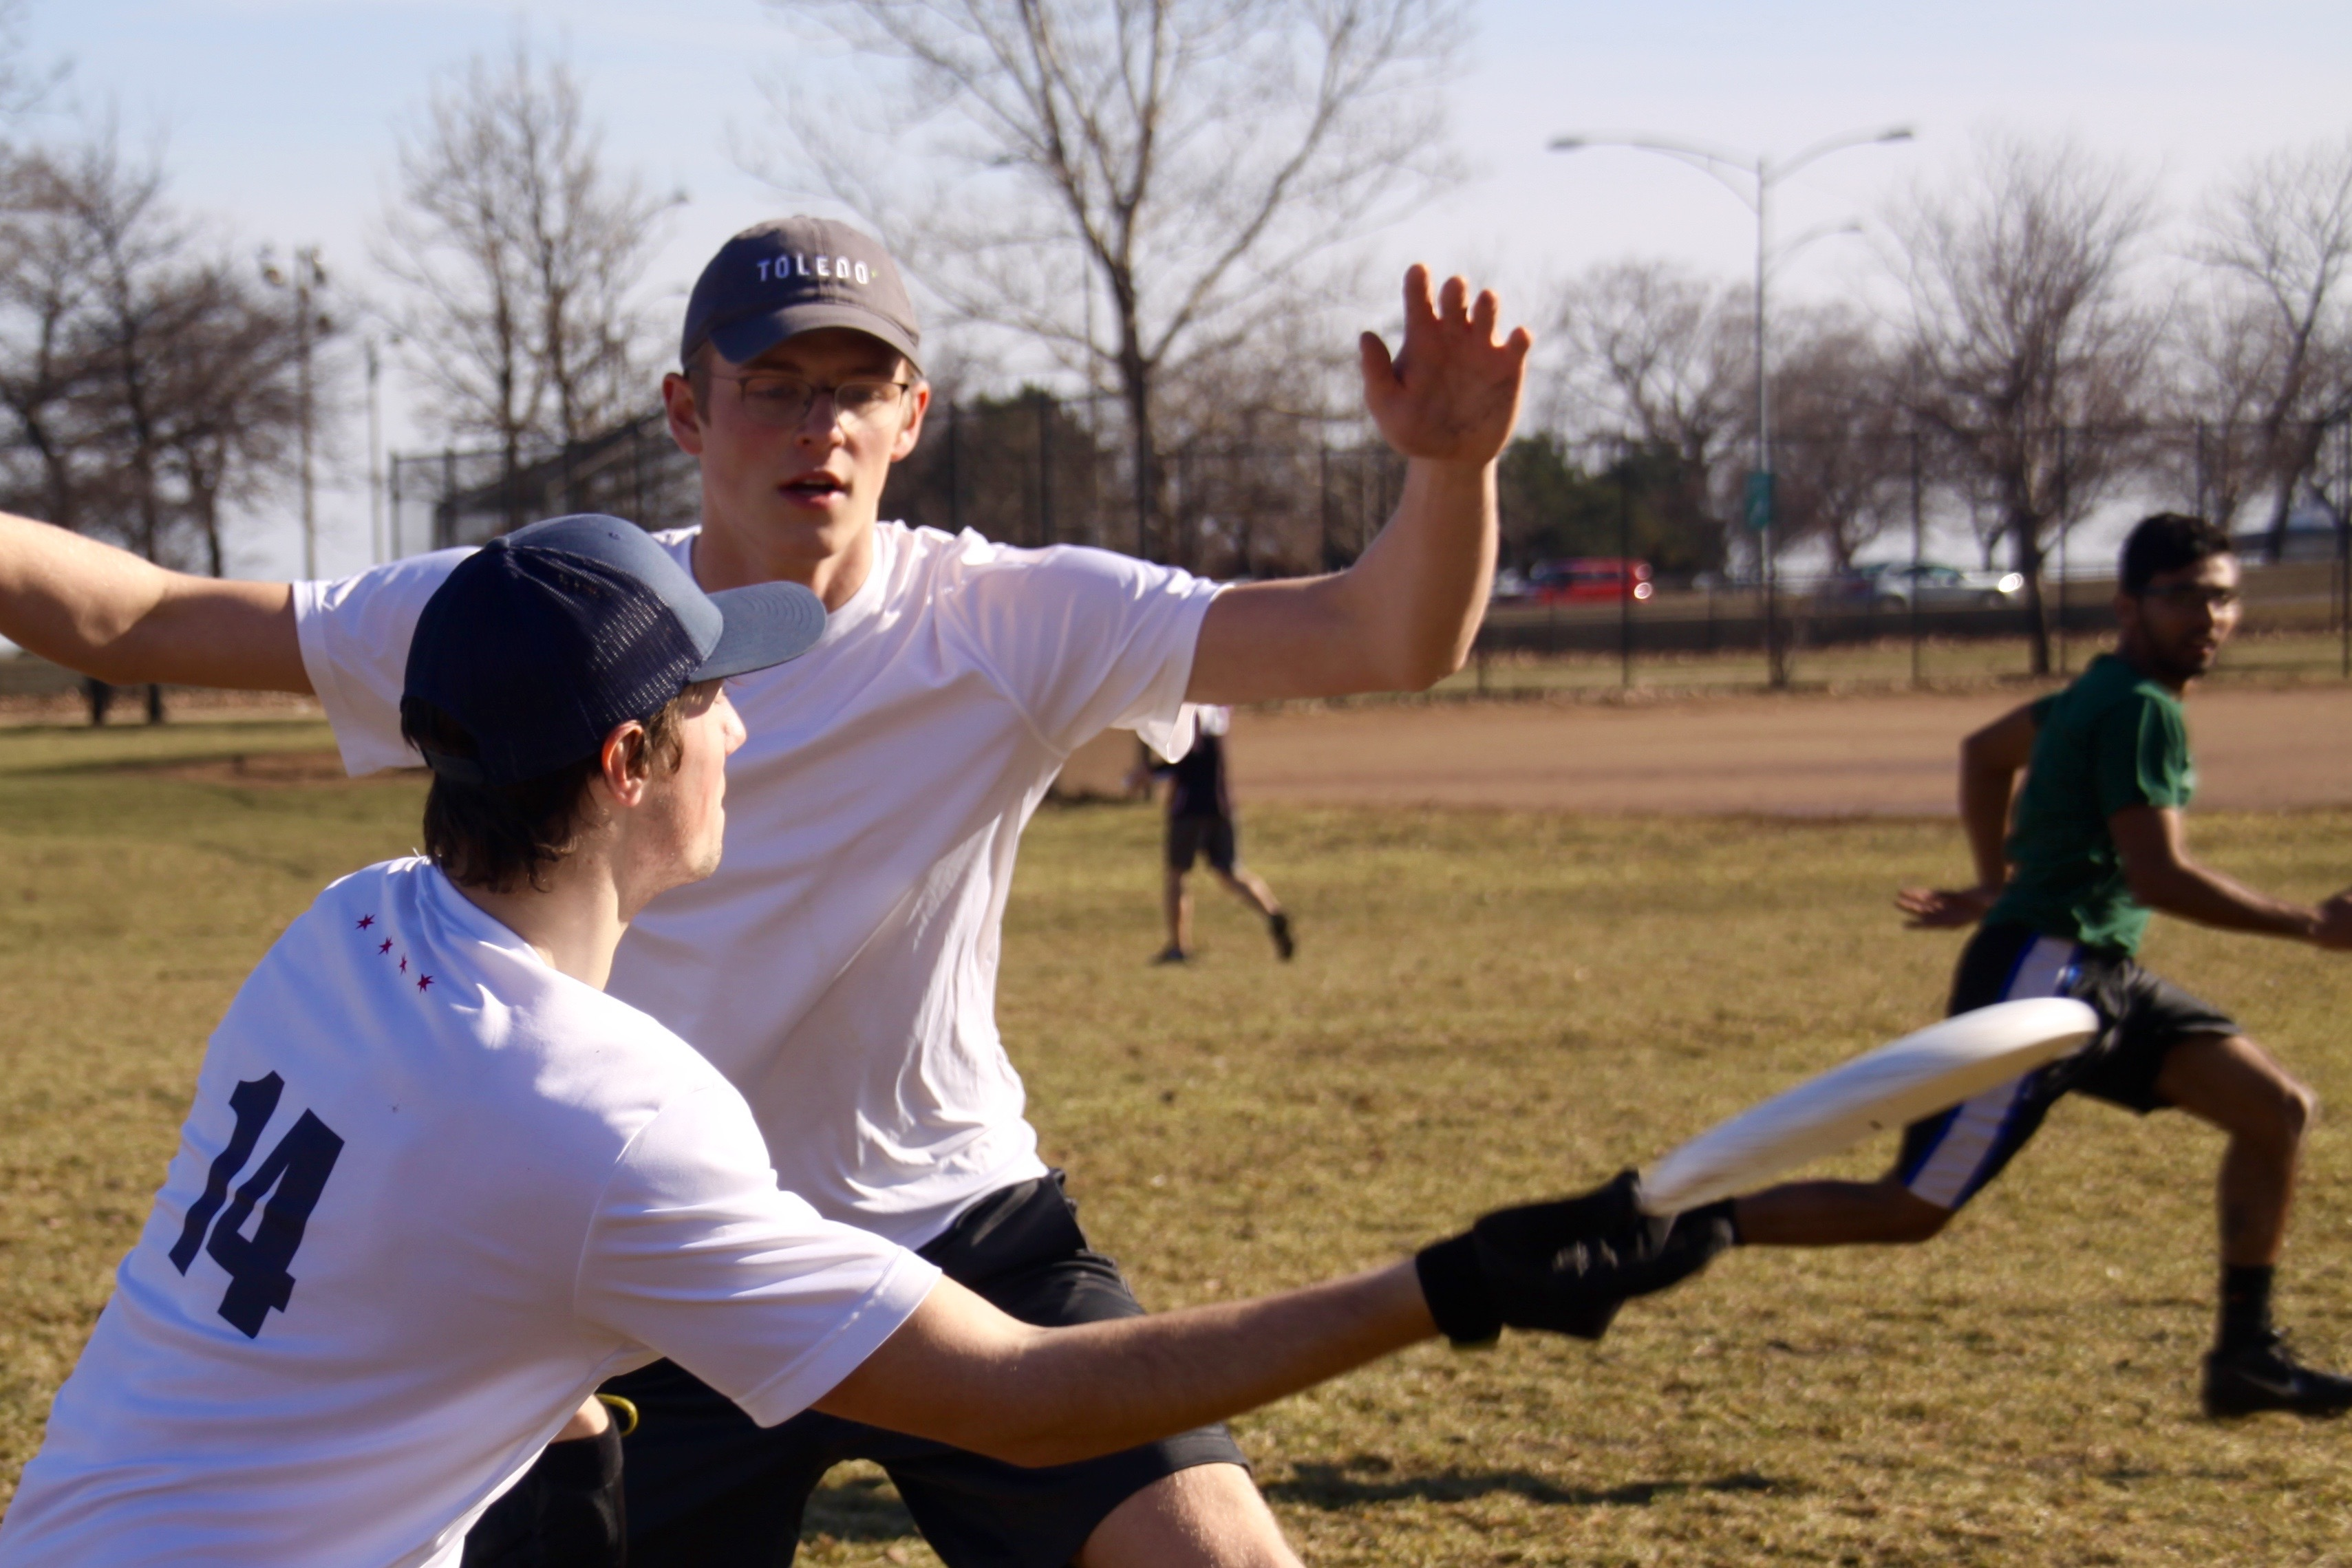 Tony Paoli, guarded by Jacob Dziubek, attempts a throw to Nitin Thomas during a drill at a DePaul Ultimate Club practice on Jan. 21, 2017. (Photo/Ben Rains)